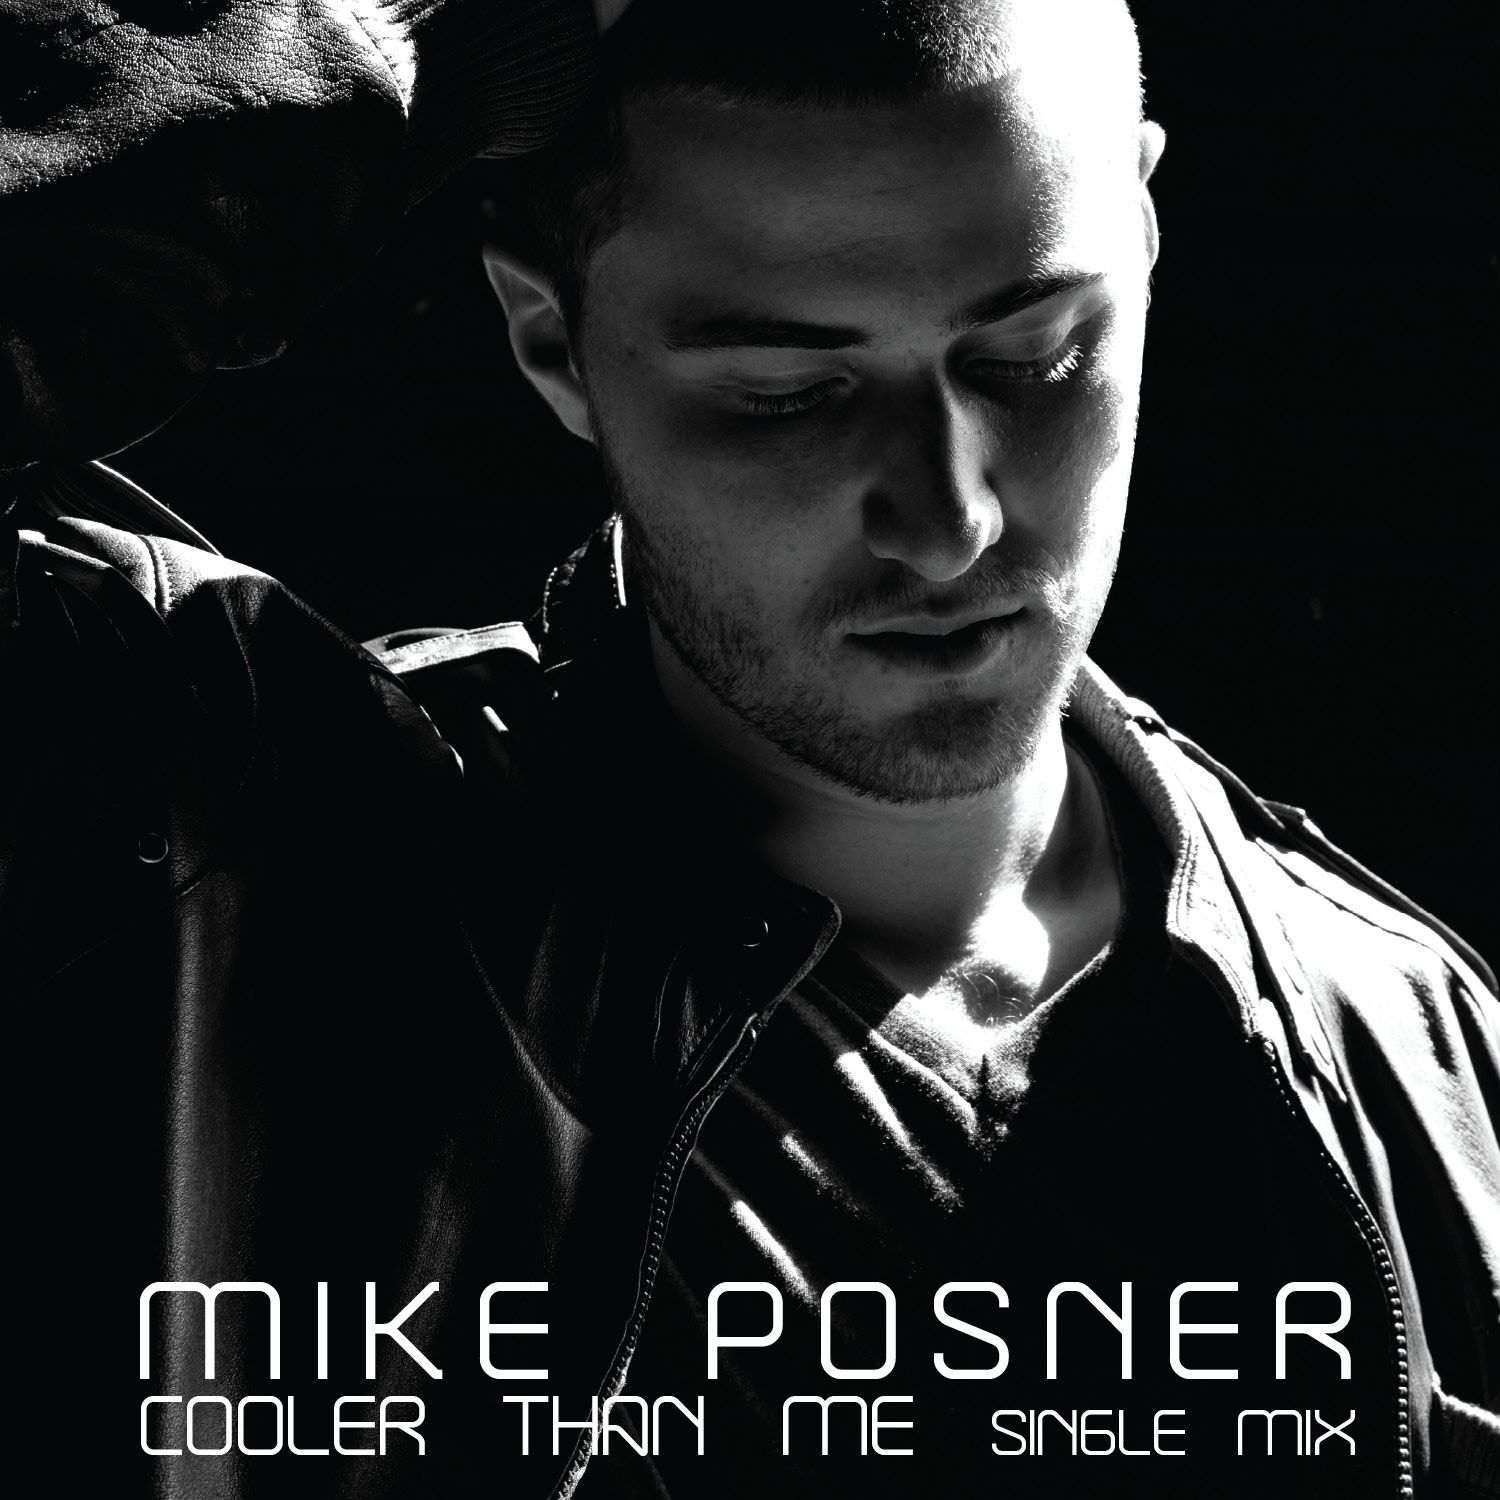 Mike Posner Cooler Than Me